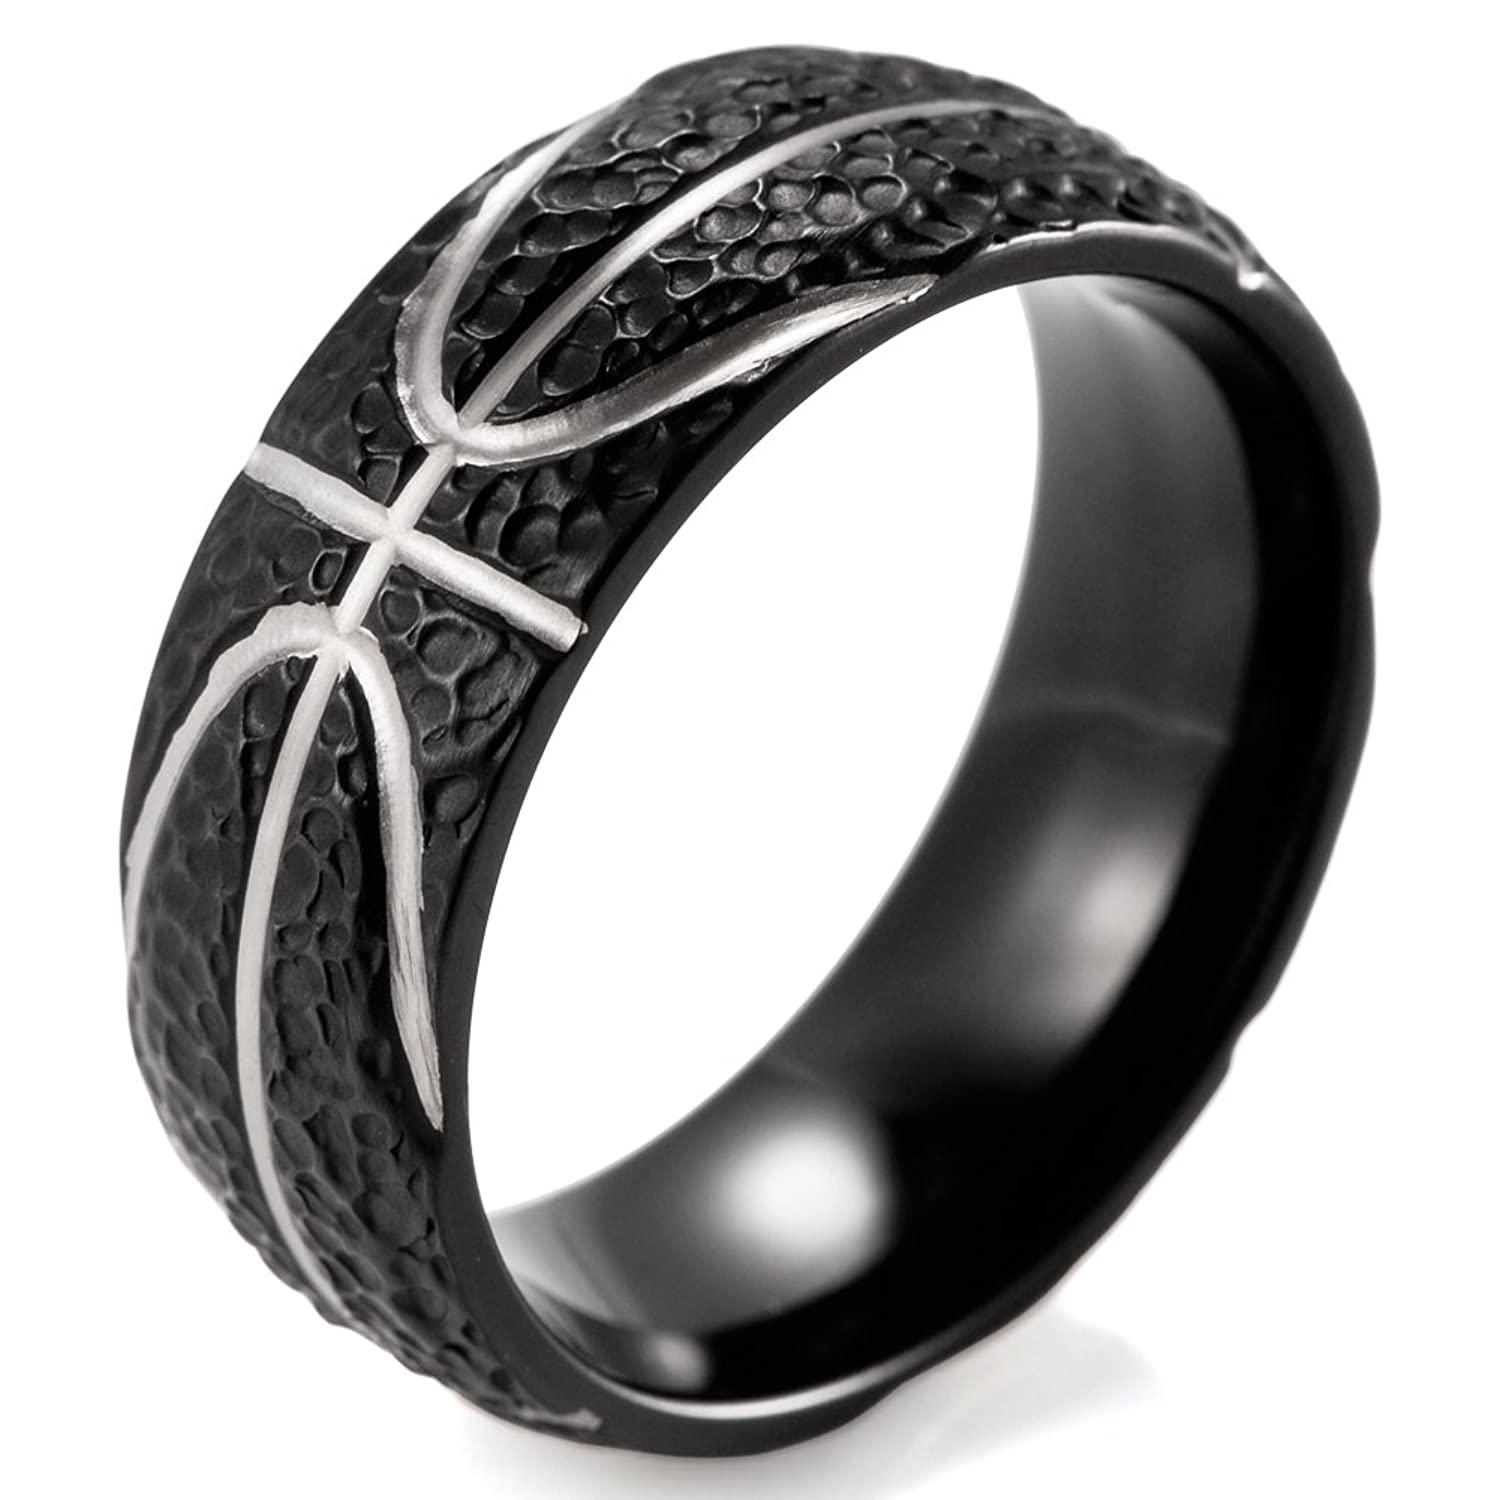 SHARDON Men's 8mm Black Domed Titanium Ring with Hammered Basketball Pattern